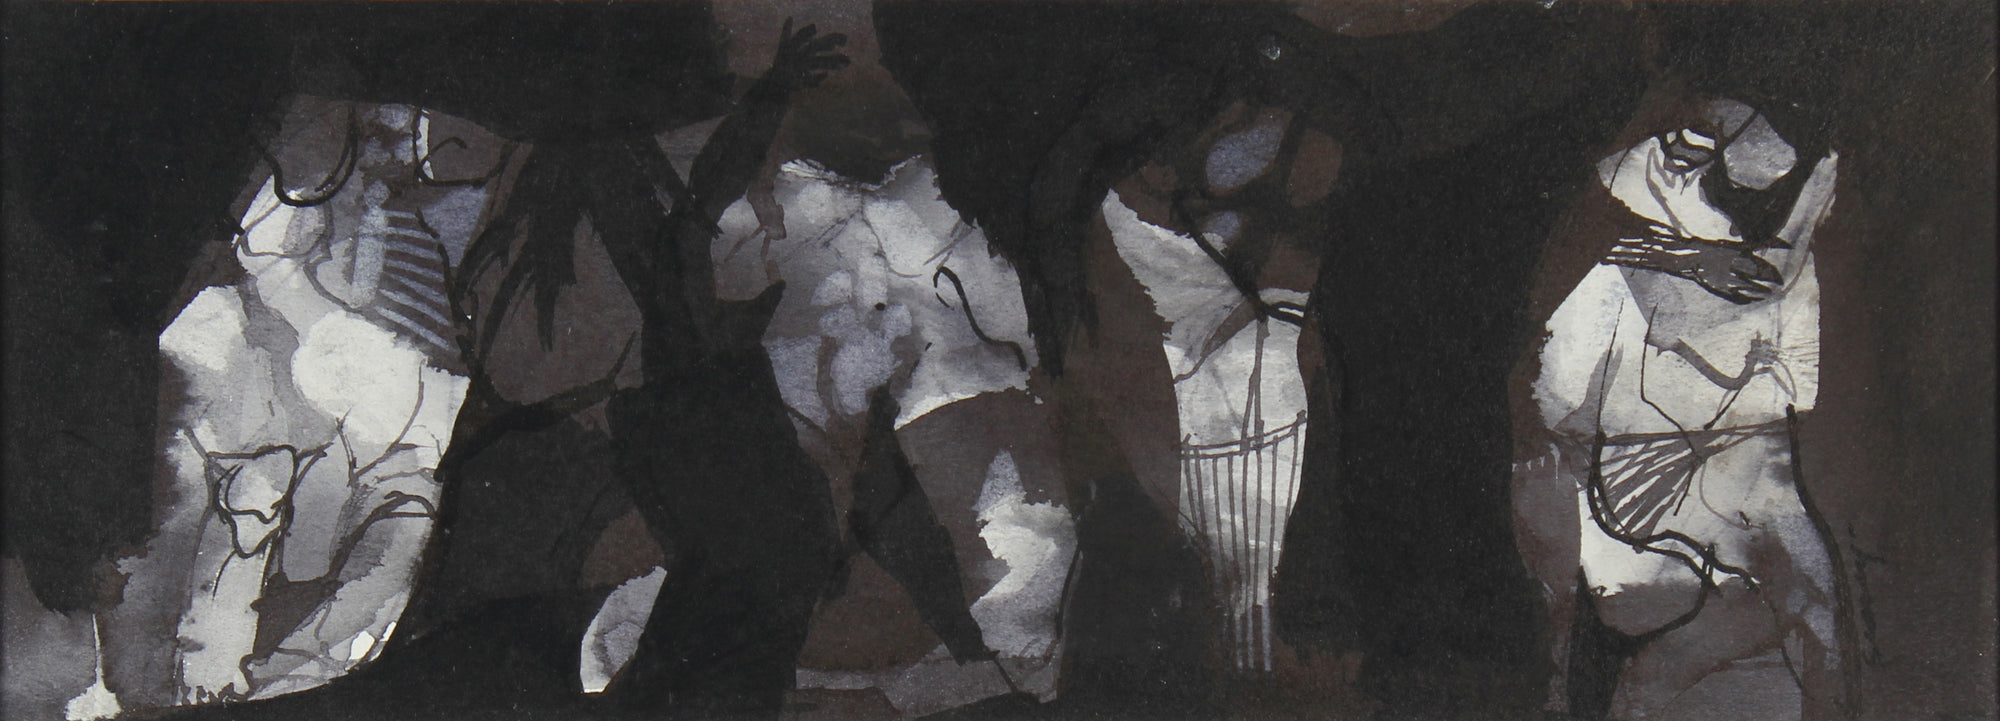 <i>Figures in the Flood</i><br>Mixed Media, 1965<br><br>#0415